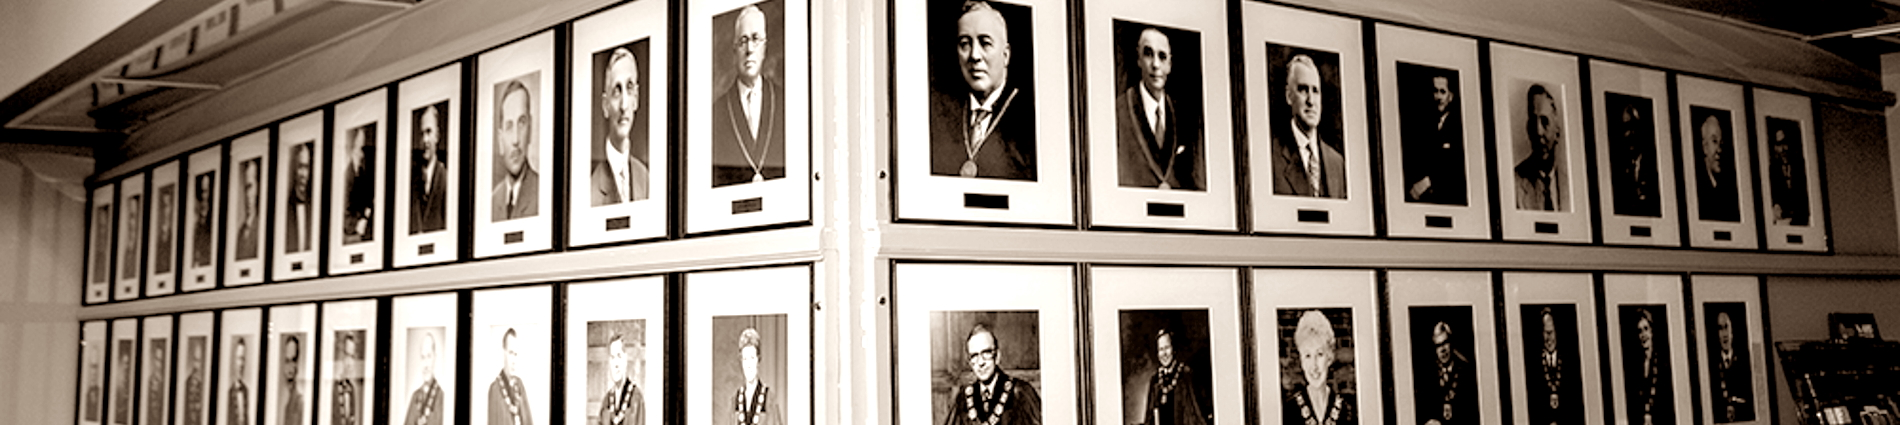 Past Mayors of Belleville